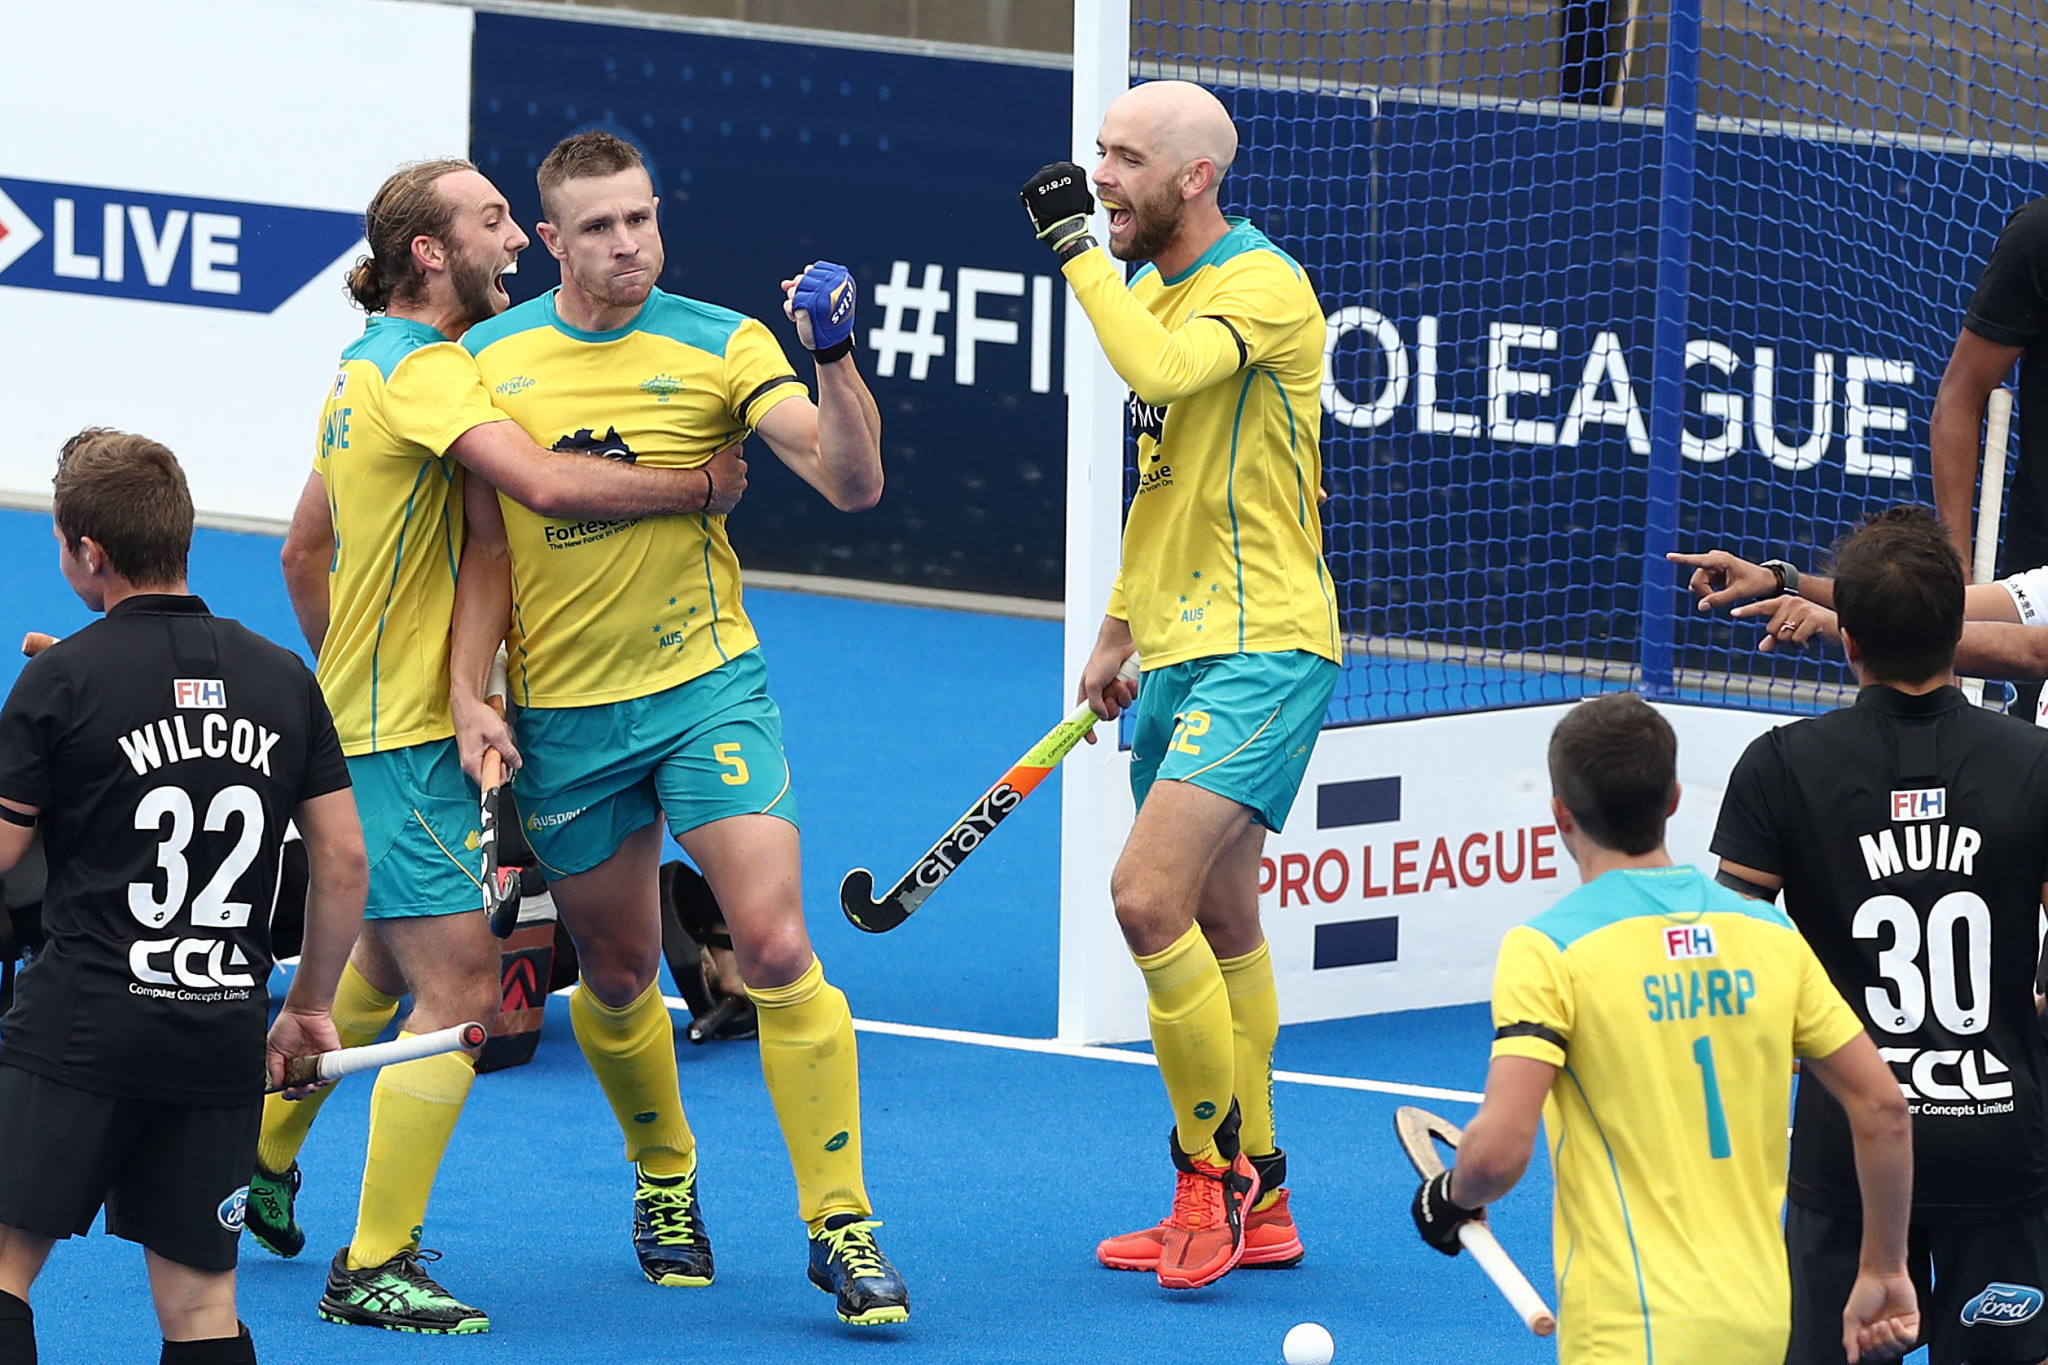 Australia's men beat New Zealand 5-1 to increase their lead at the top of the FIH Pro League standings ©Getty Images